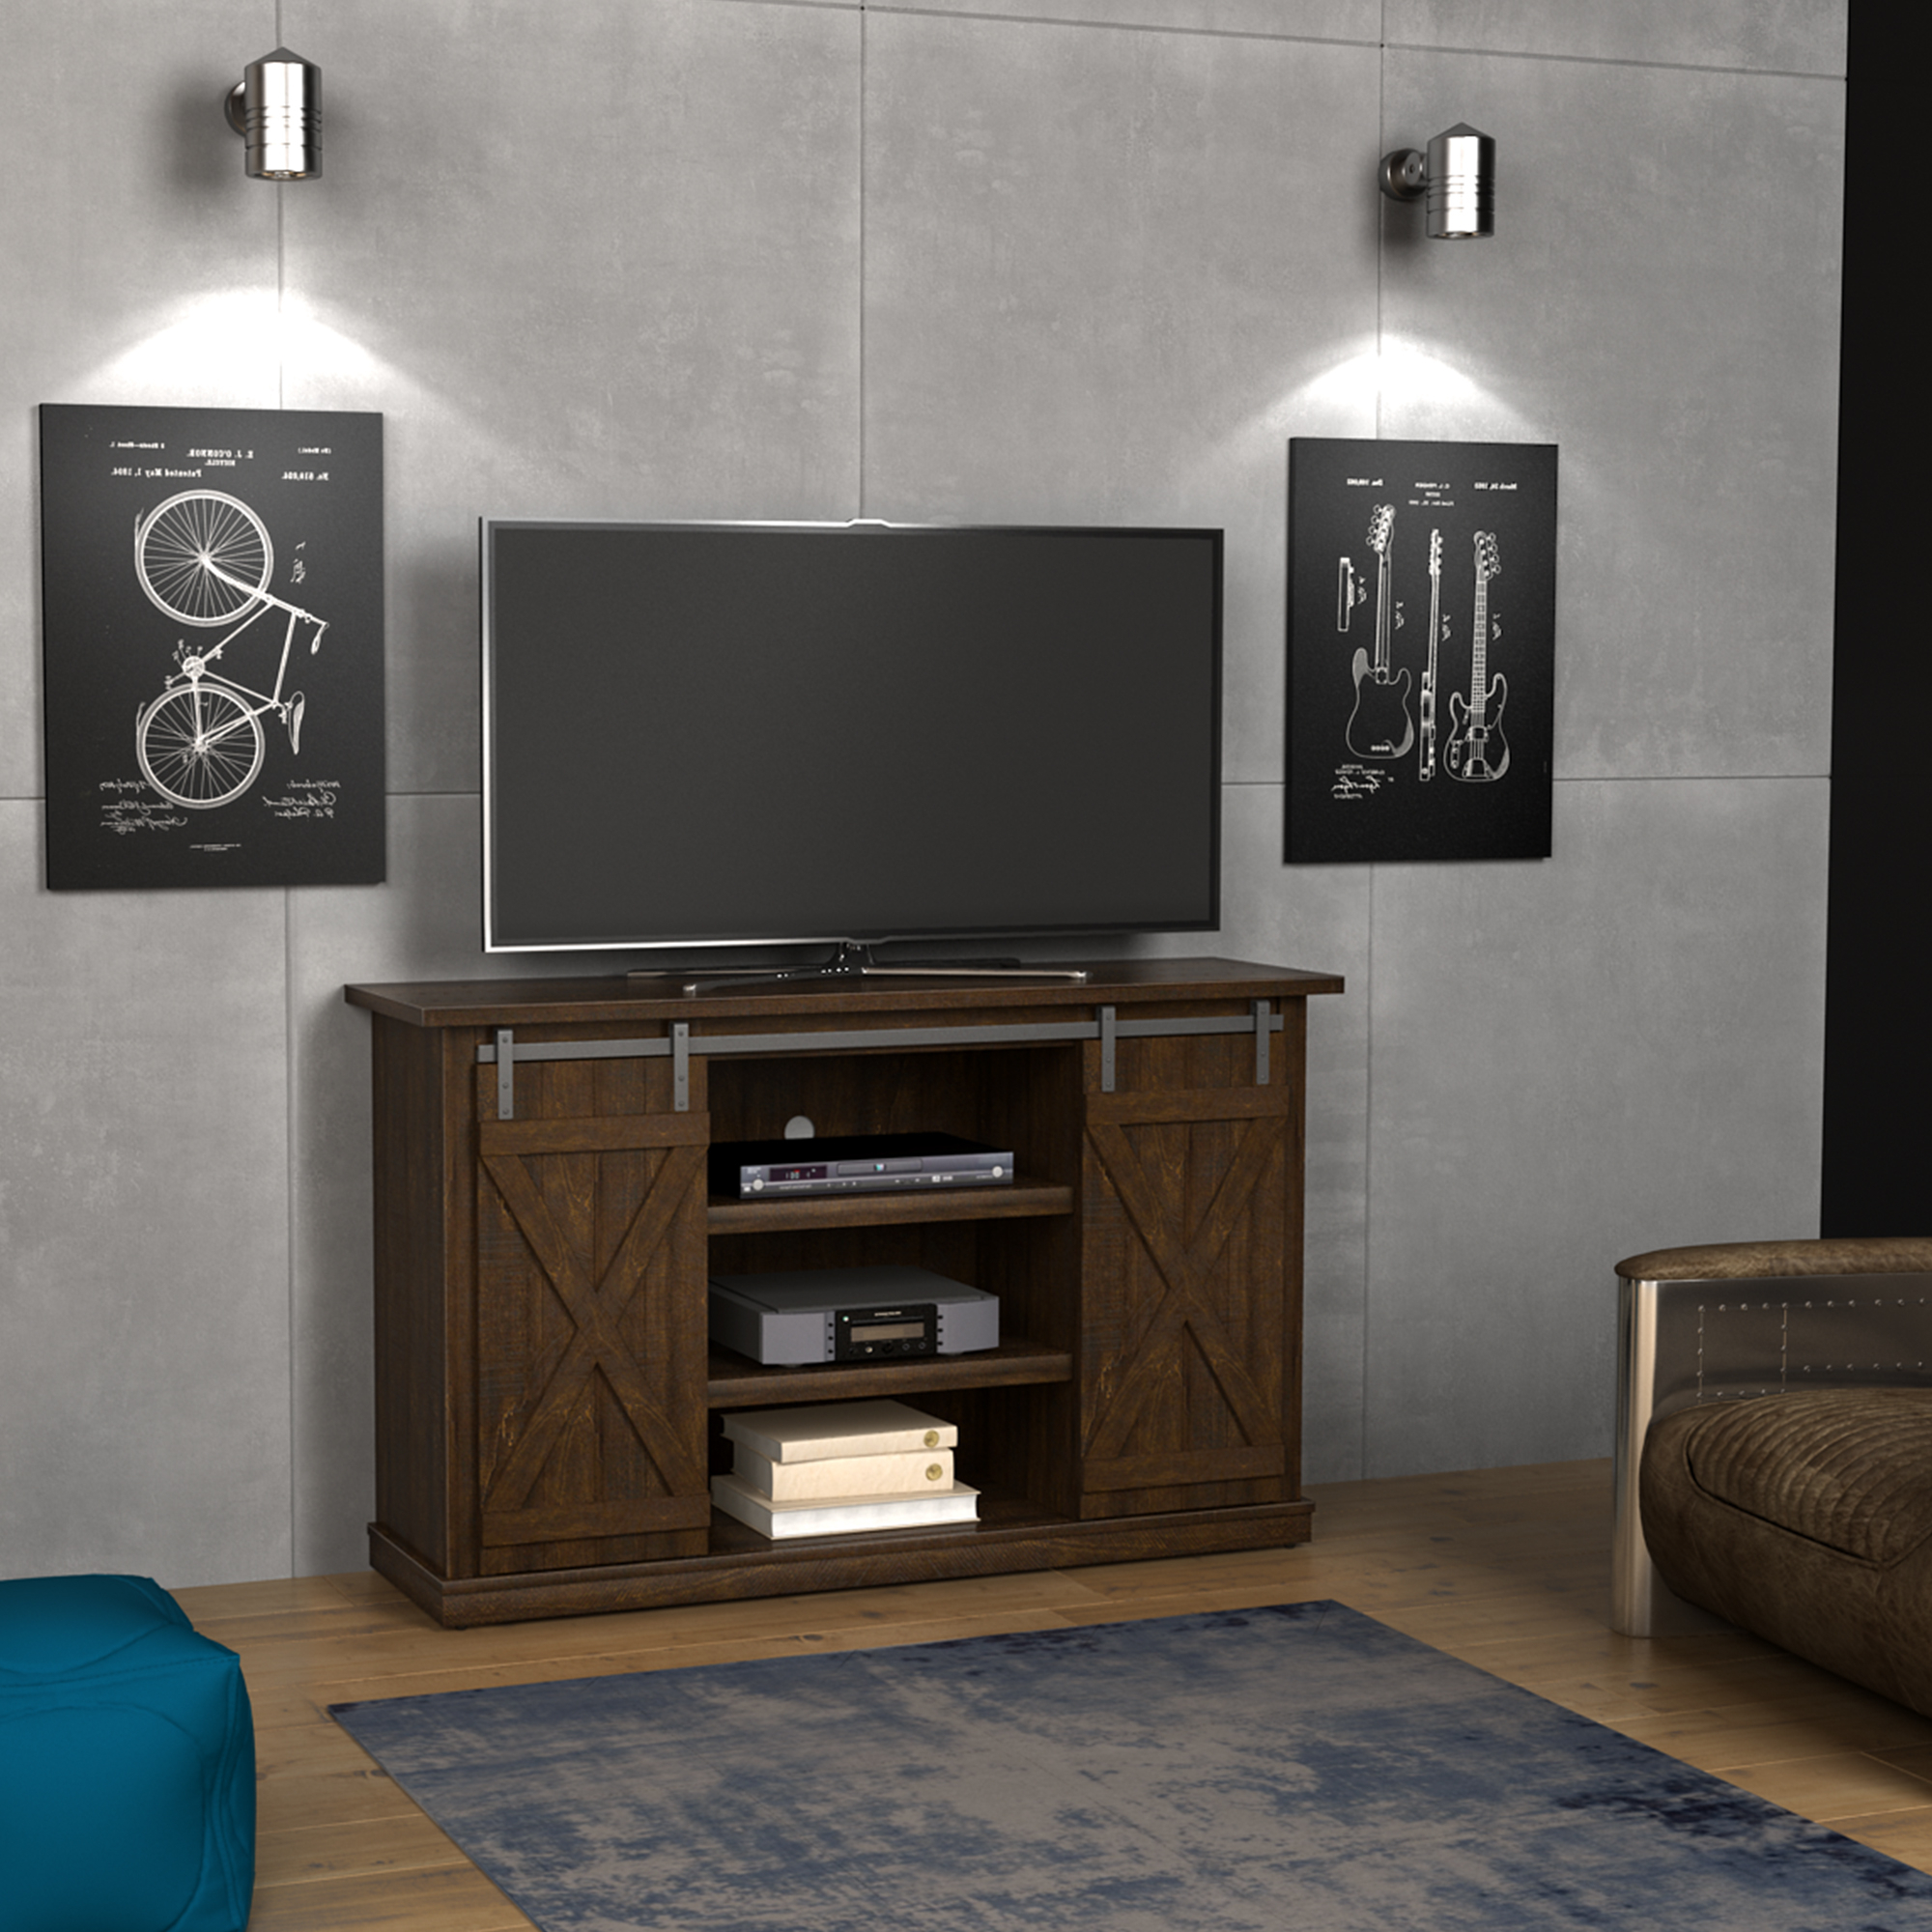 Cottonwood Tv Stand For Tvs Up To 60 Inches With Sliding With Regard To Most Recently Released Farmhouse Sliding Barn Door Tv Stands For 70 Inch Flat Screen (View 6 of 10)